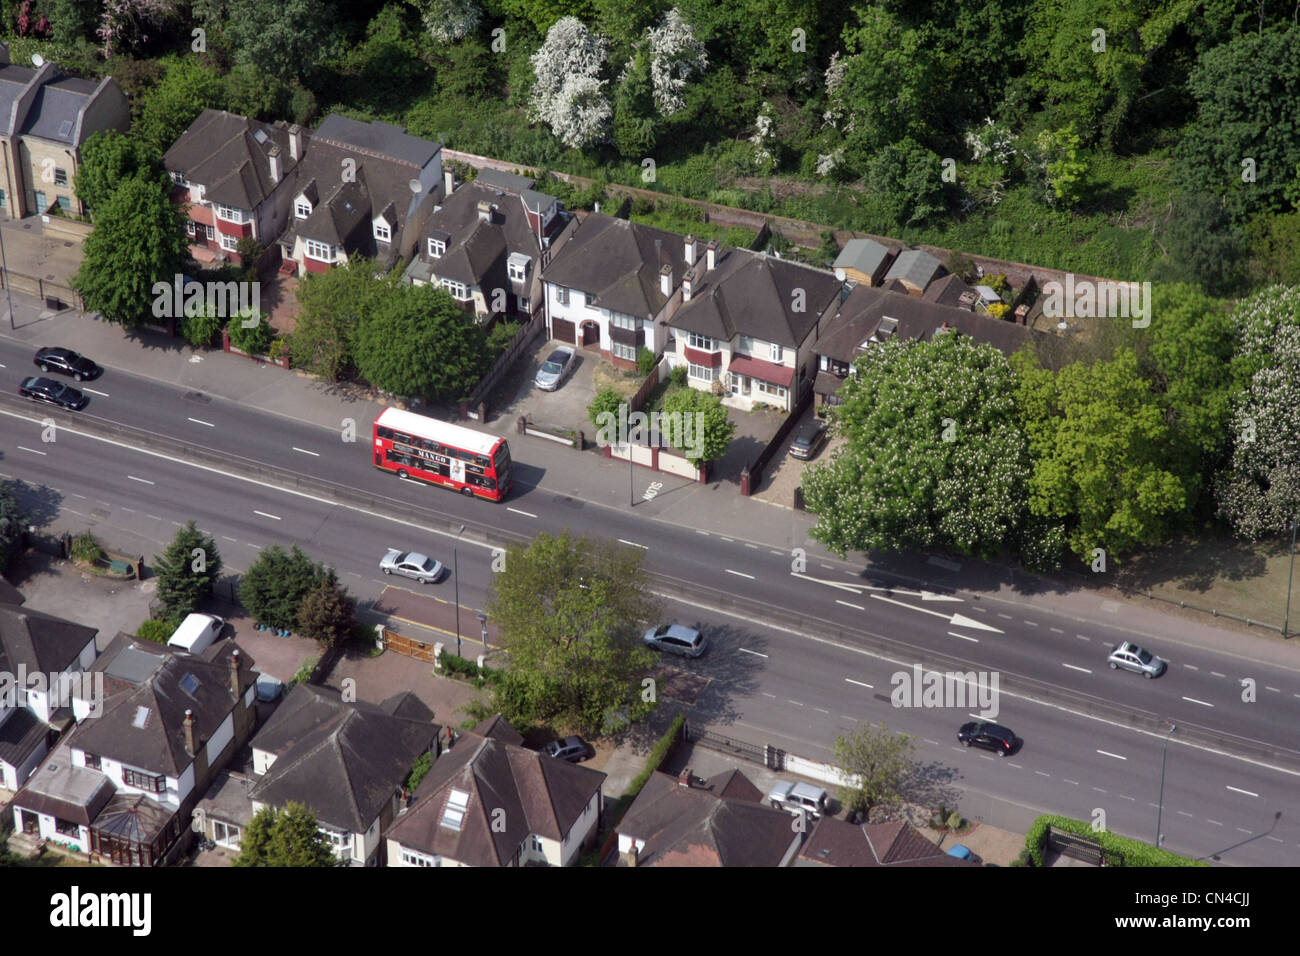 aerial view of a London bus in suburbia - Stock Image